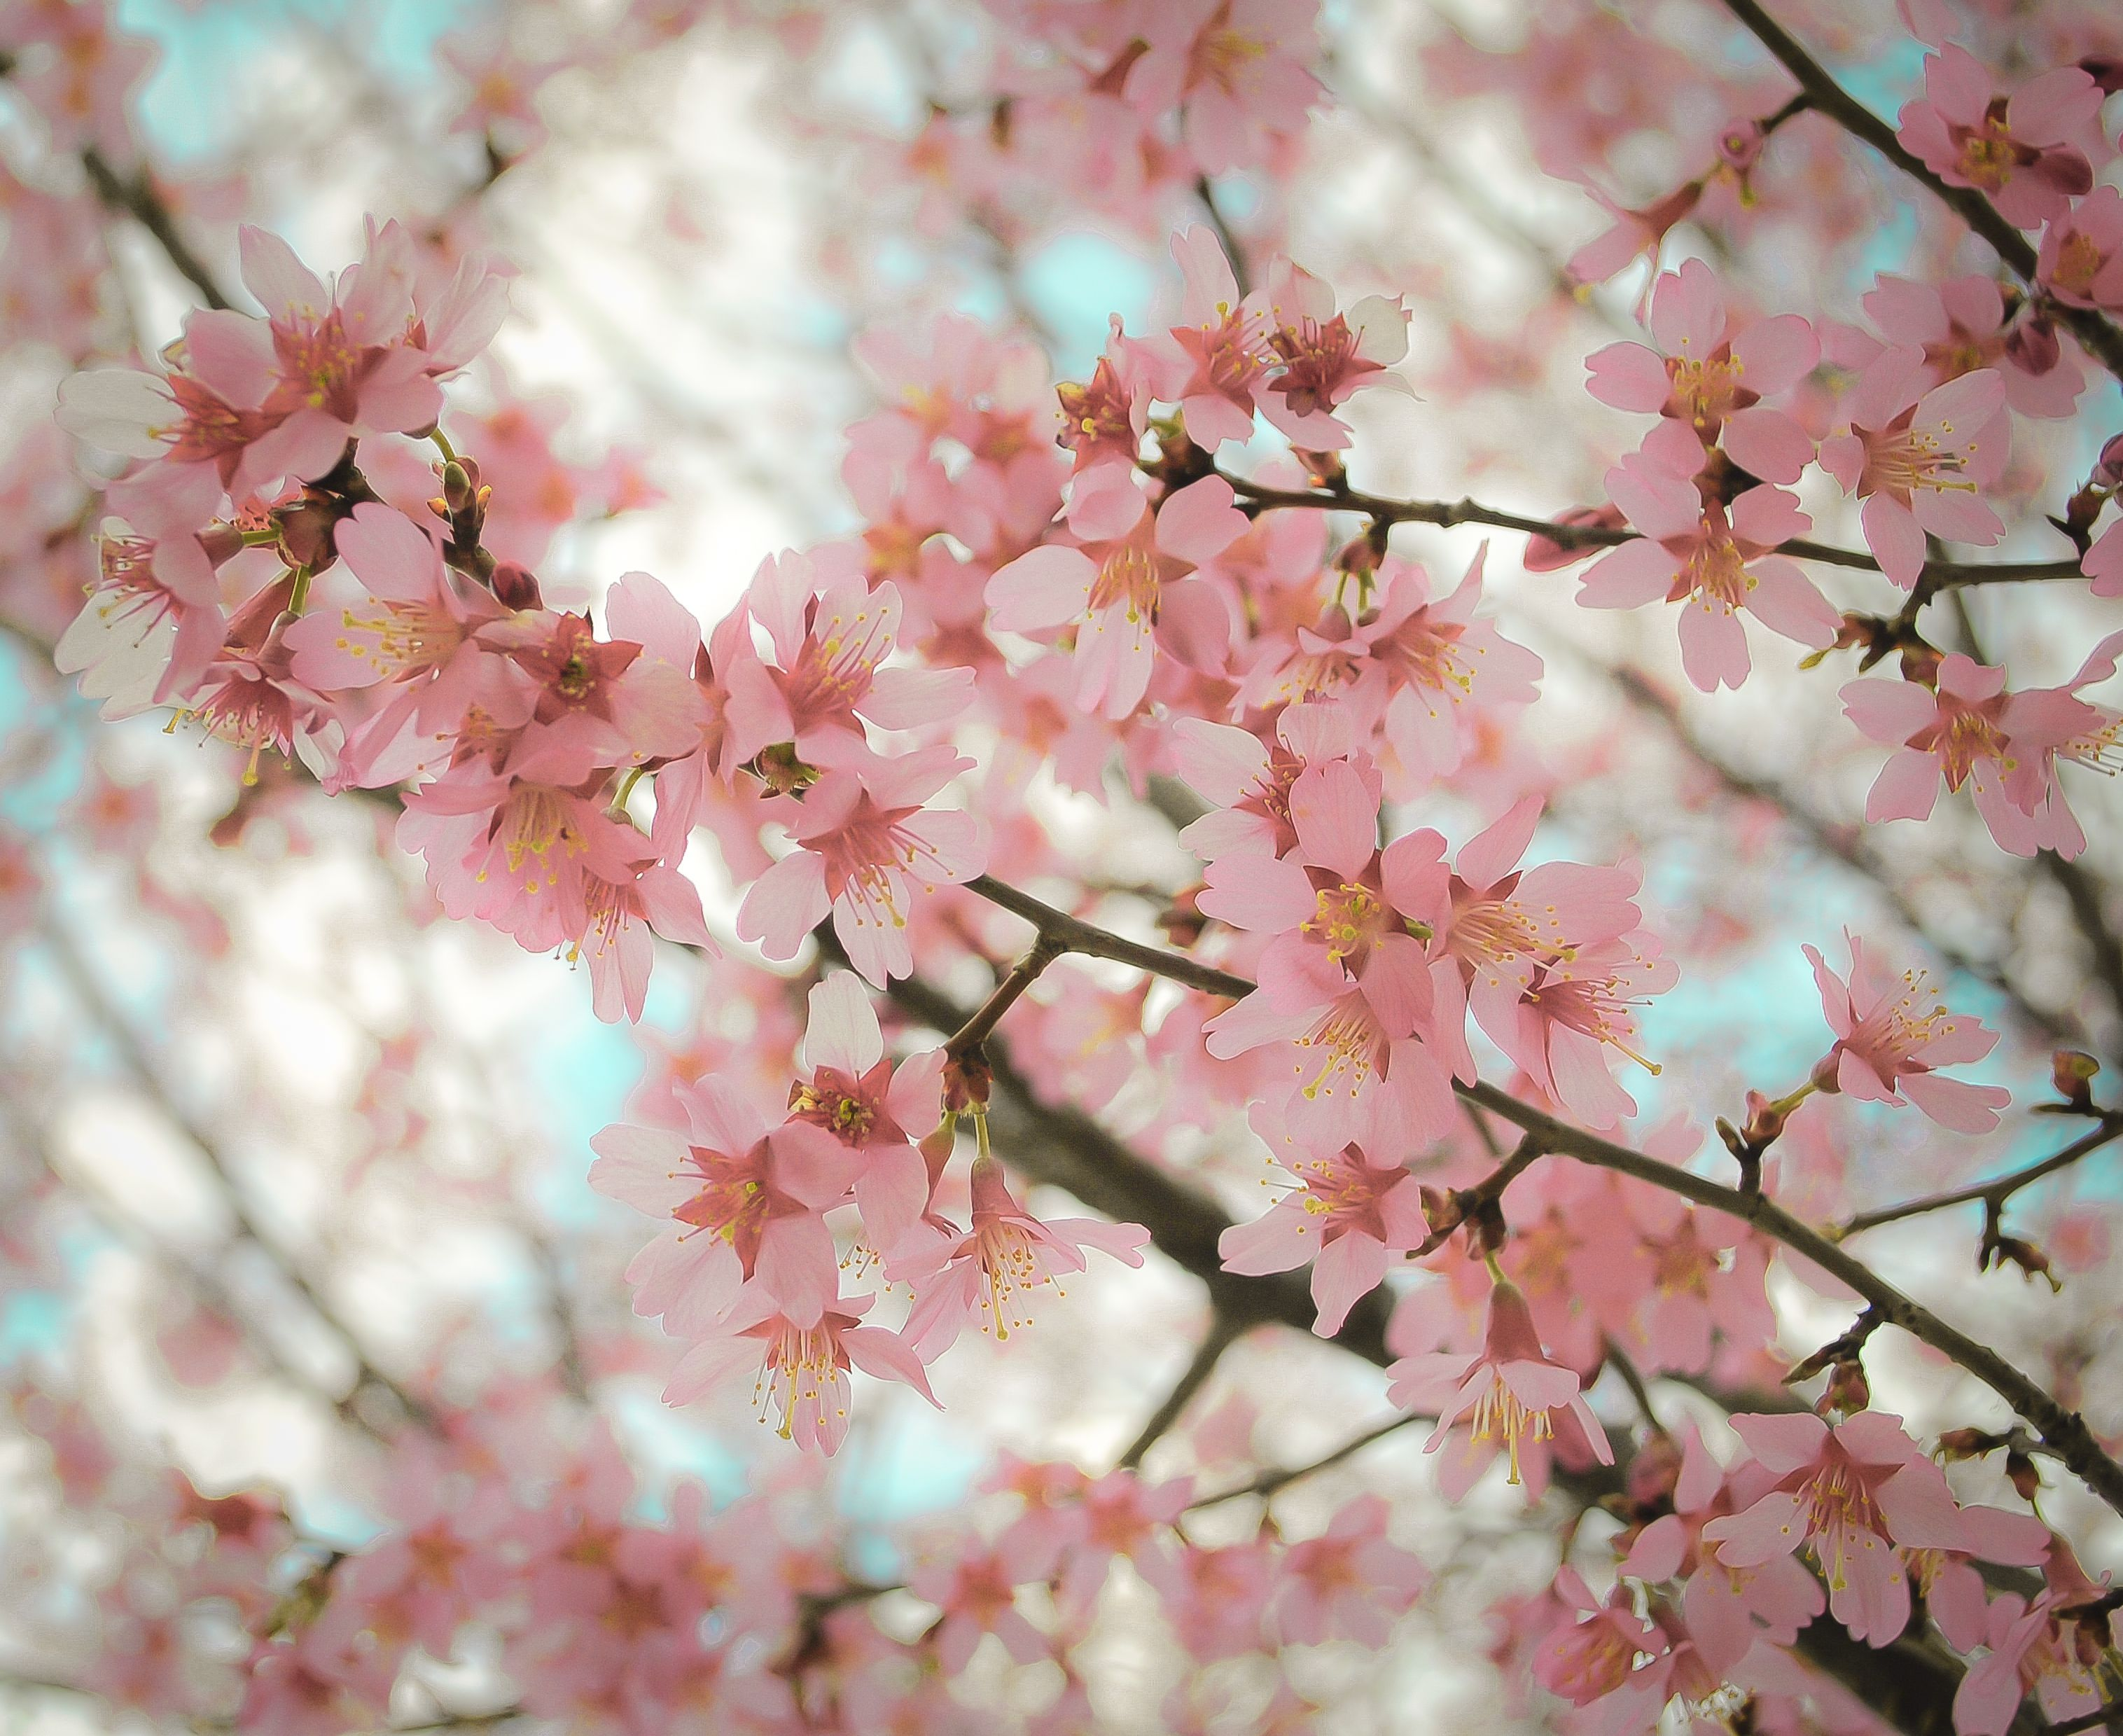 Pink Flowers Tumblr Photography Hd Images 3 HD Wallpapers | Tumblr ...